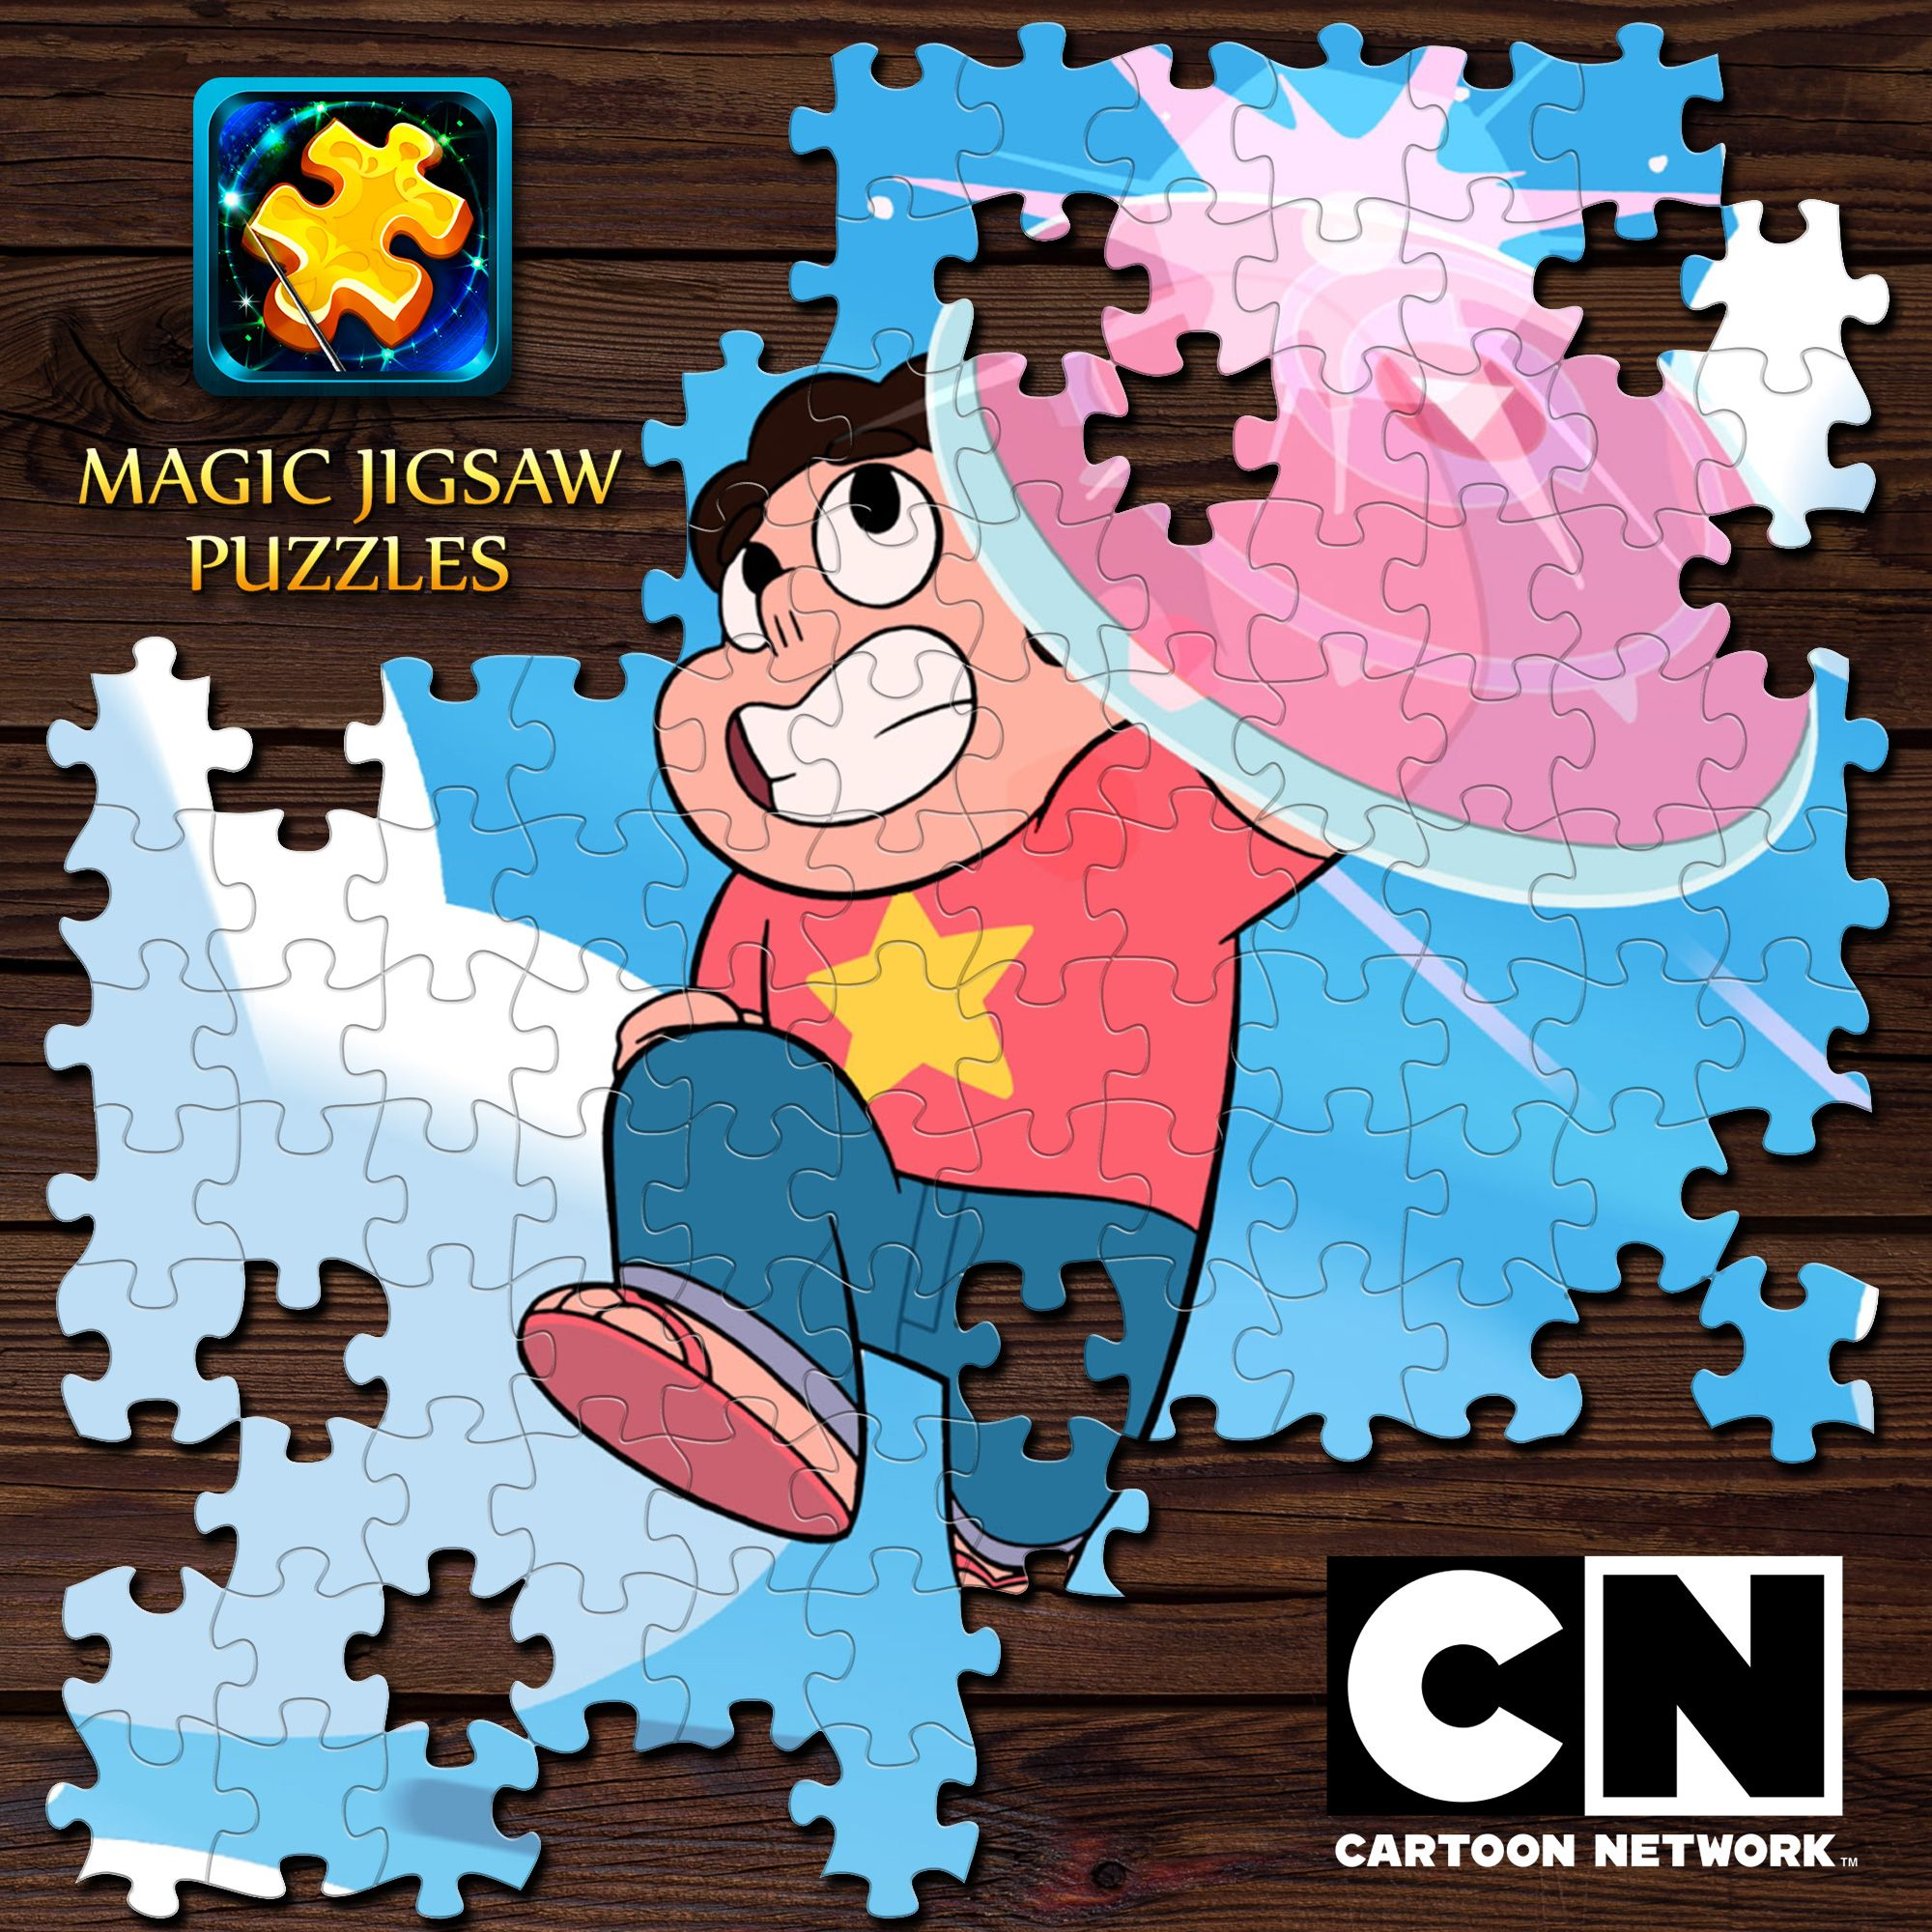 New Steven Universe Сartoon Network puzzles are waiting